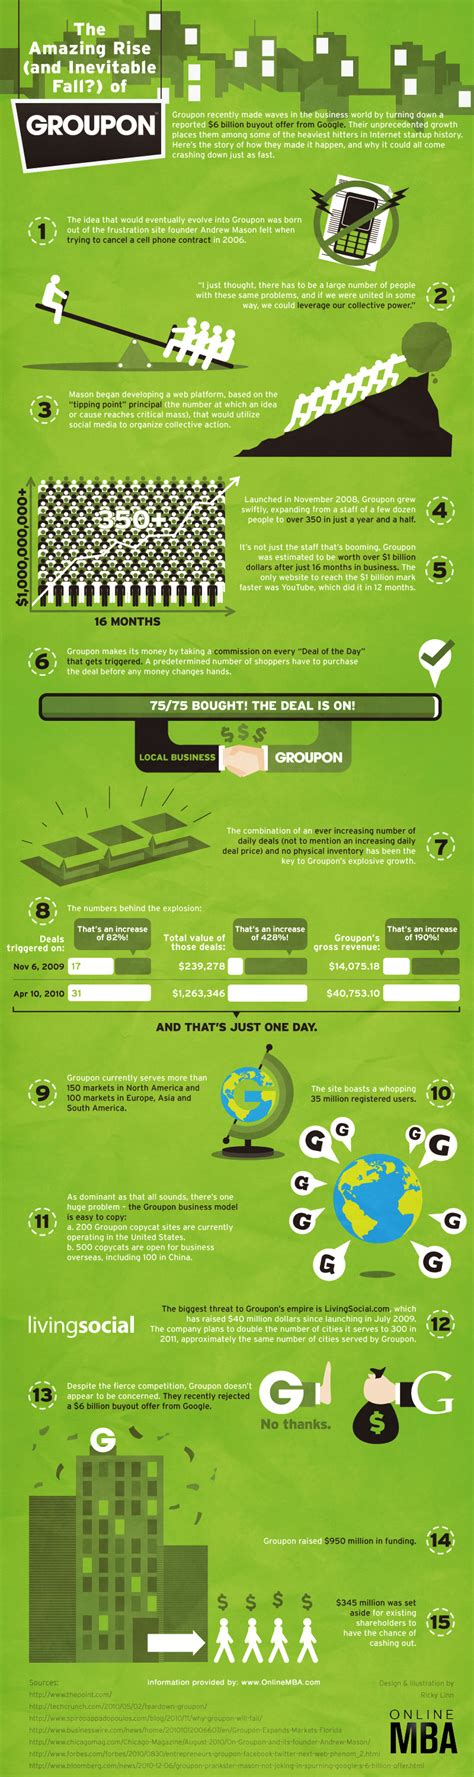 Groupon Mba by The Groupon Story In An Infographic